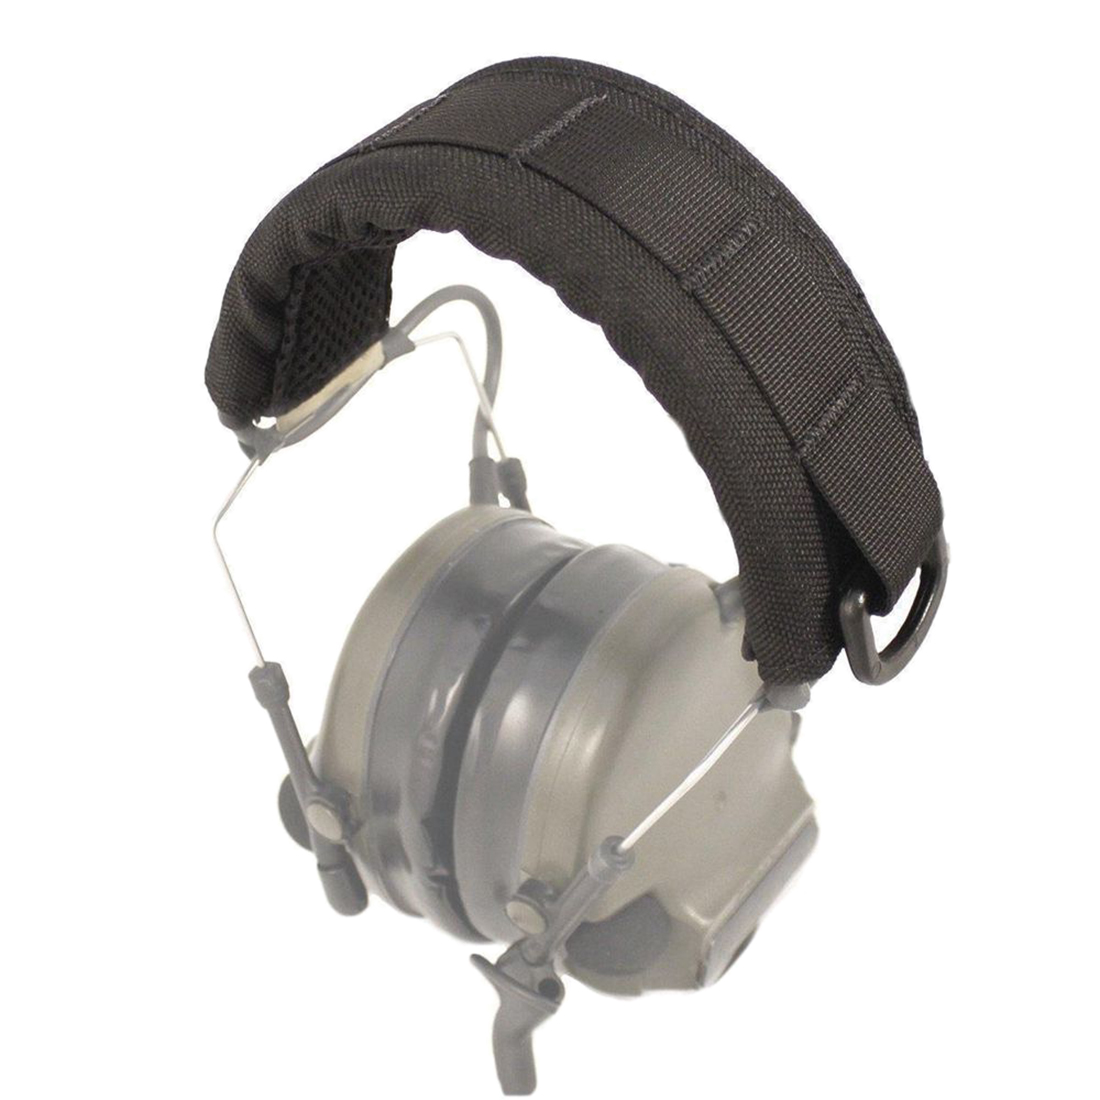 Modiker Tactical Earphone Cover Modular Headset Cover Molle Headband - CP Camouflage